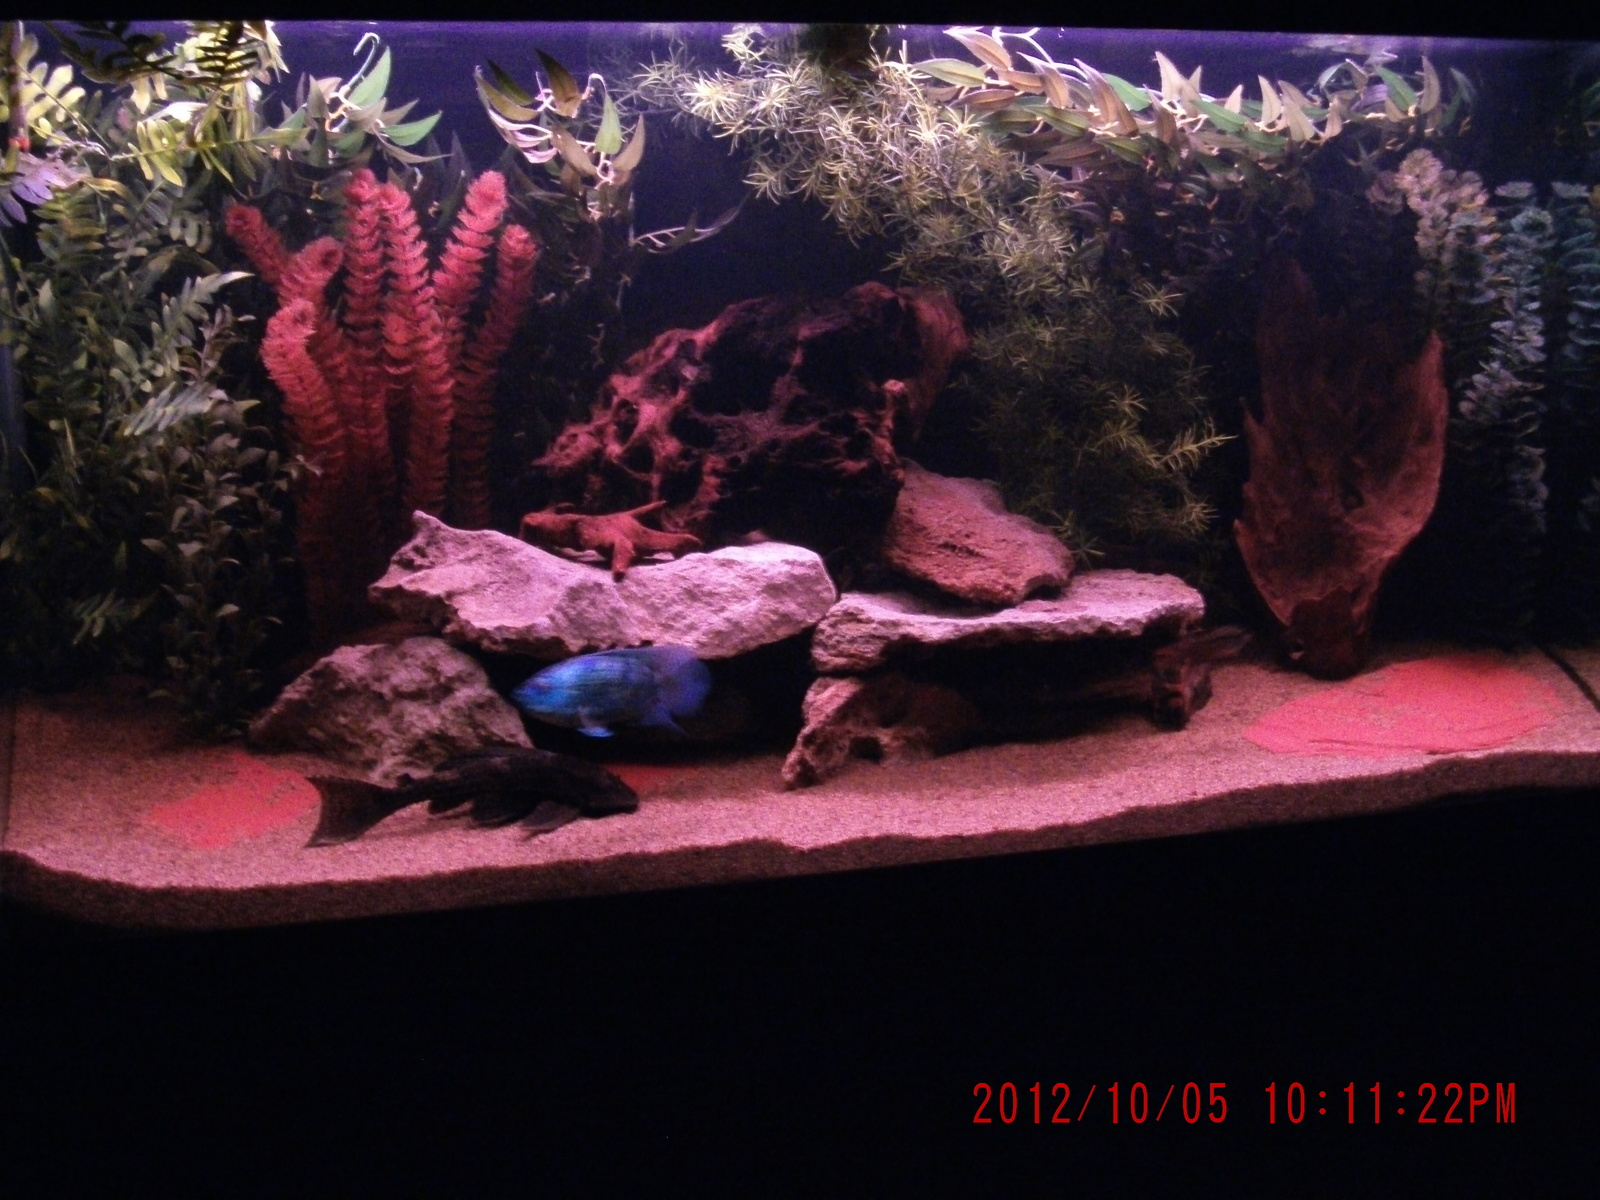 Update on 90 gallon set up has black background now and I redecorated it.  | by J B